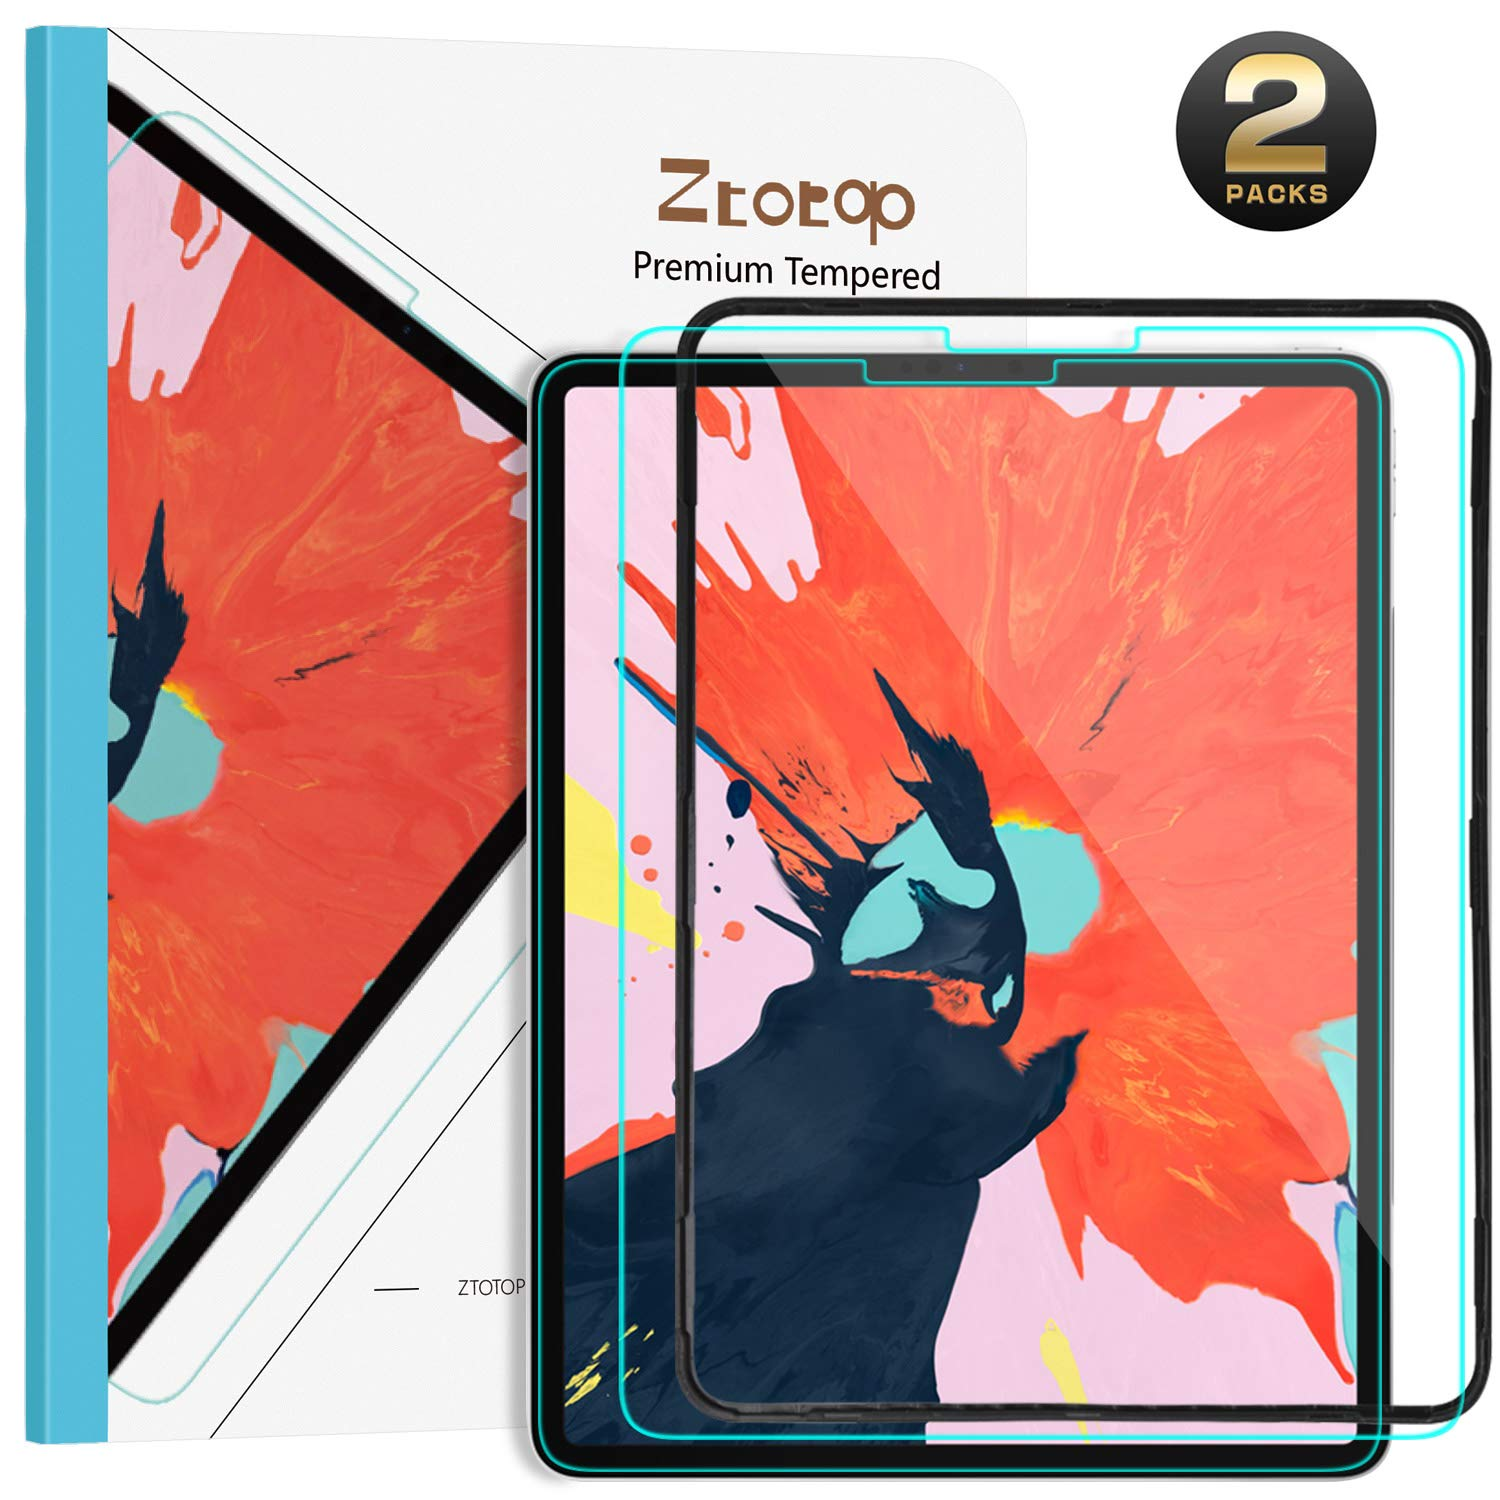 Ztotop Screen Protector for iPad Pro 12.9 inch 2018(3rd Gen), [2 Pack] High Definition/Scratch Resistant/iPad Pencil Compatible 9H Tempered Glass Screen Protector for iPad Pro 12.9 Inch 2018 Release